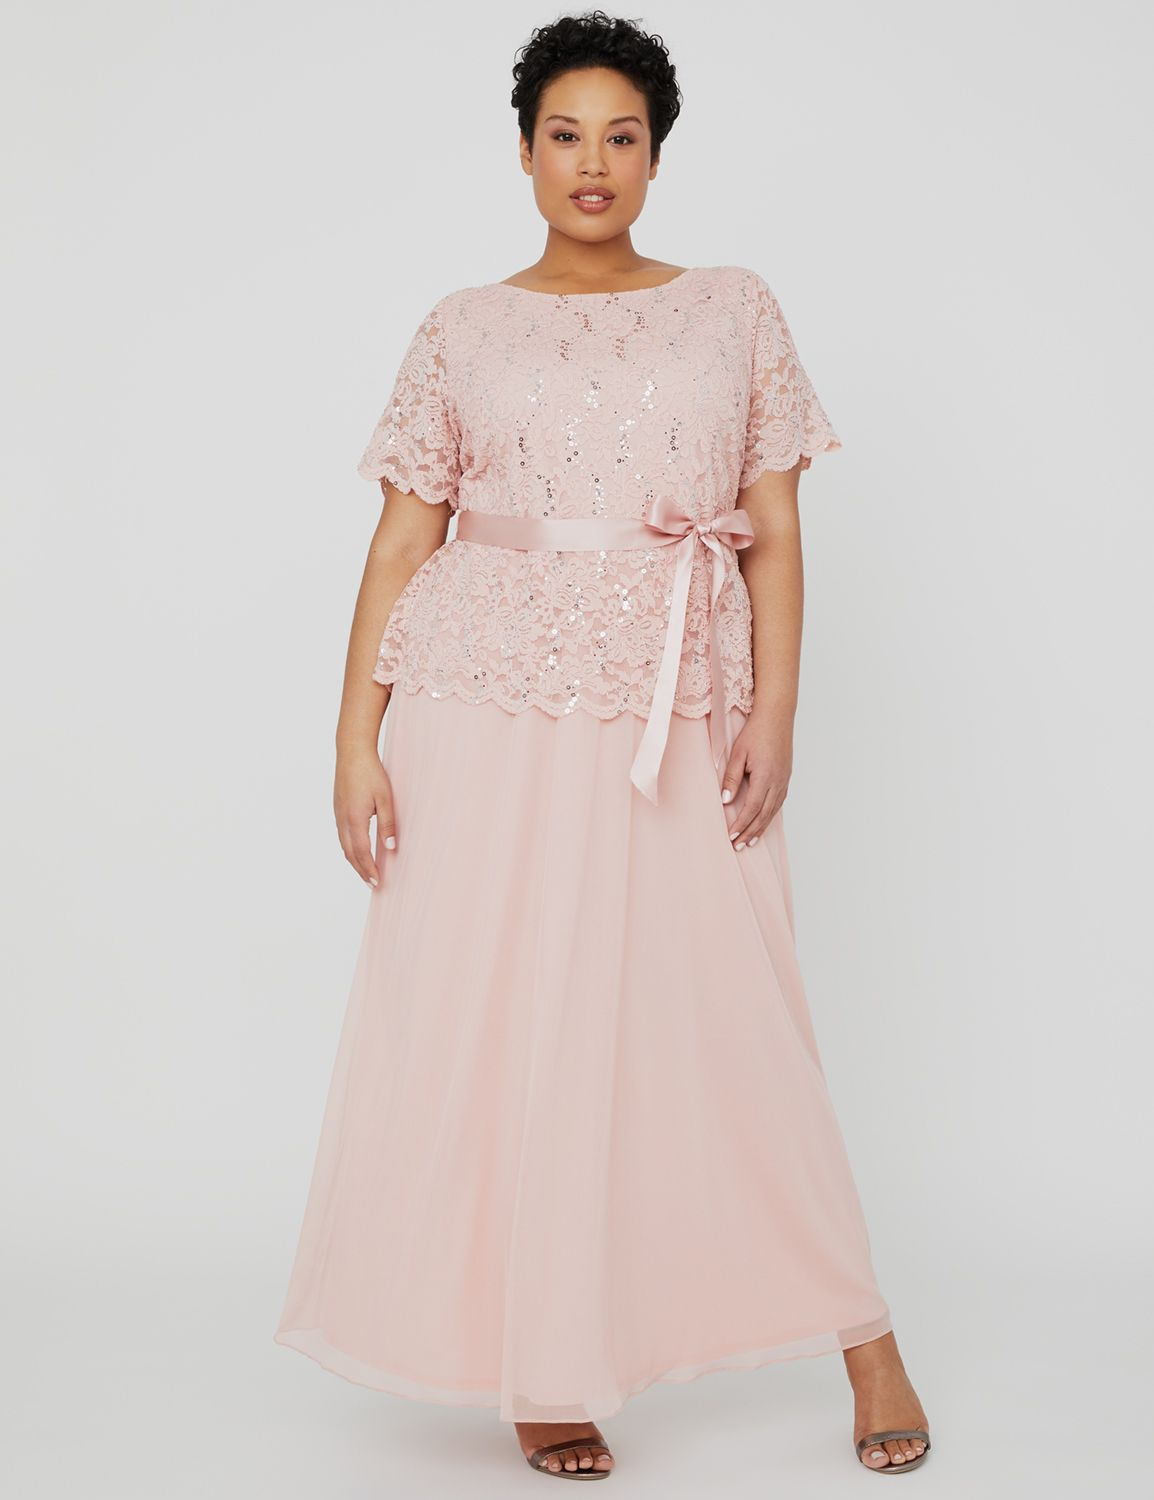 Blush Sunset Dress 1090995 Long Dress with Lace Bodice MP-300101531